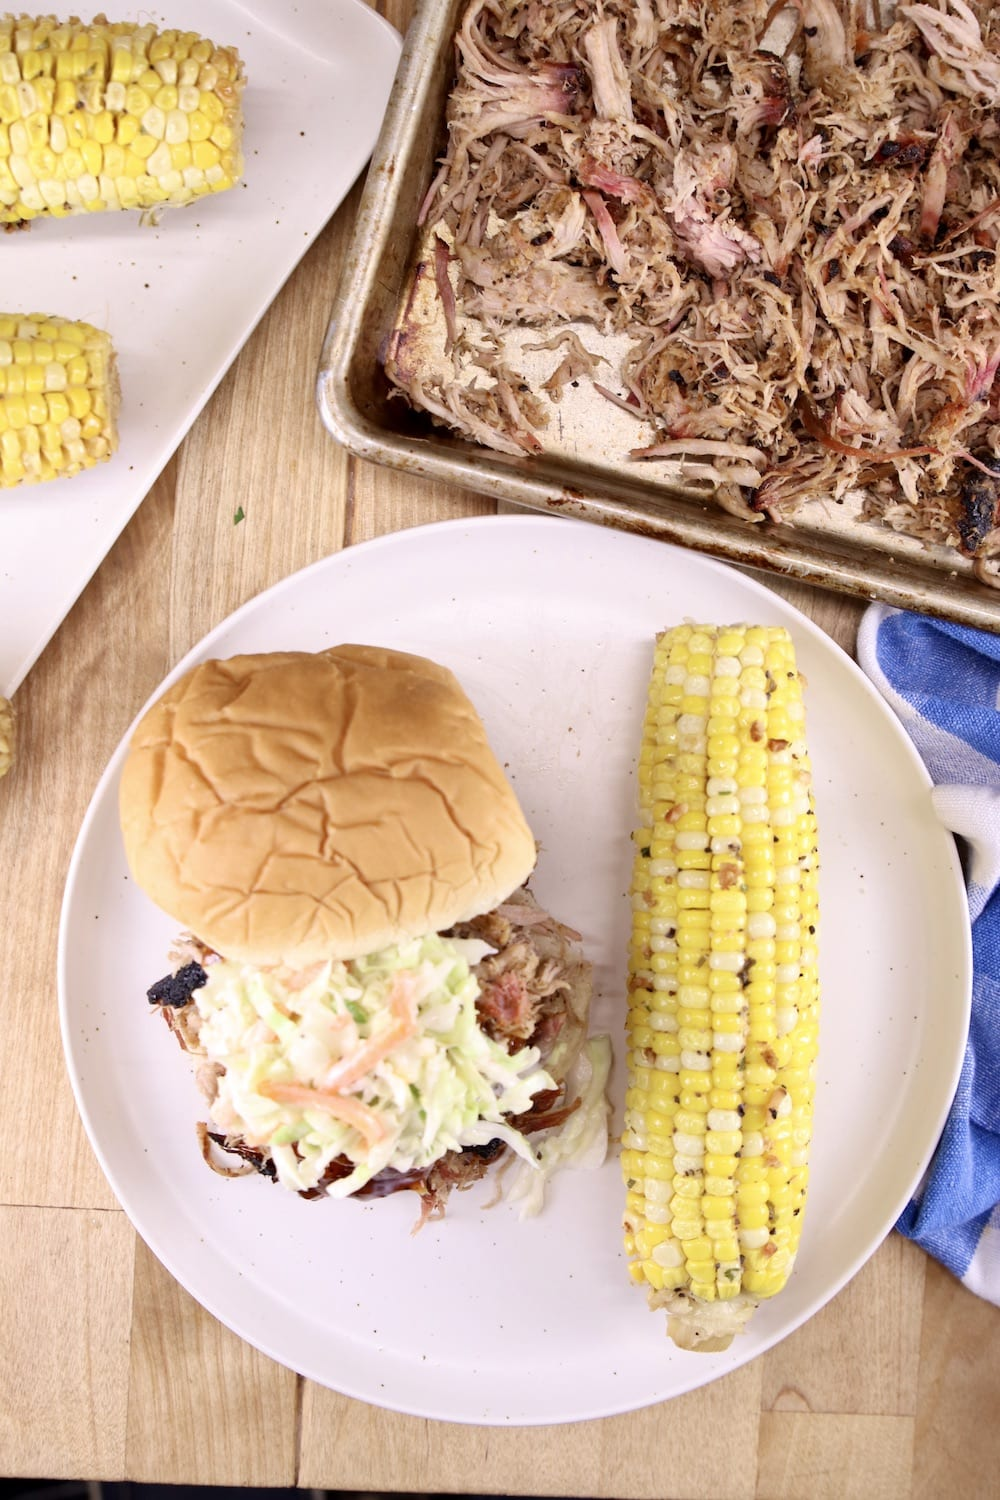 pulled pork on a tray and plated on a sandwich with coleslaw served with corn on the cob